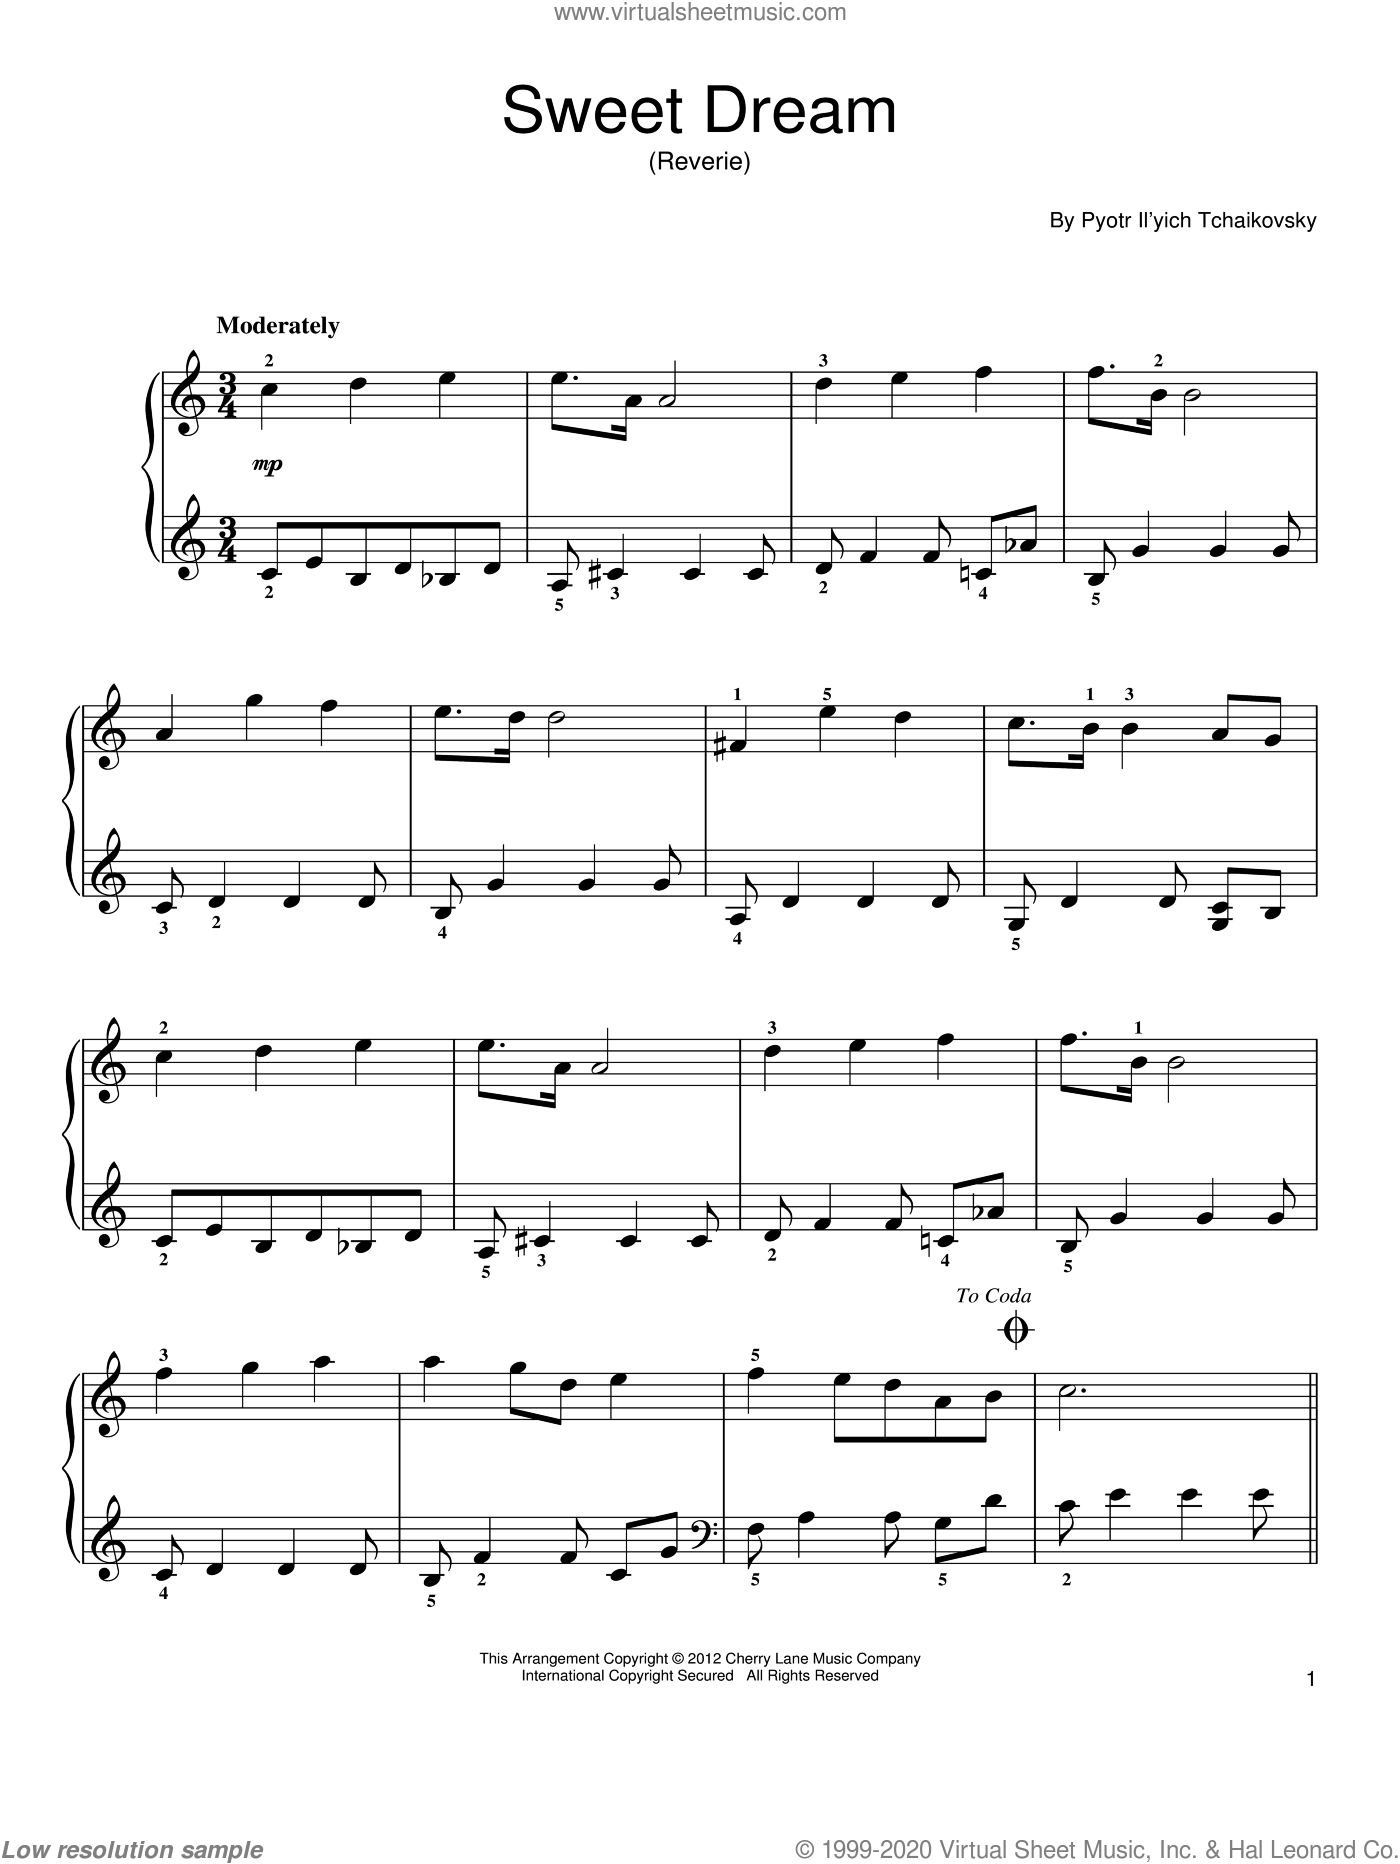 Sweet Dream (Douce Reverie), Op. 39, No. 21 sheet music for piano solo by Pyotr Ilyich Tchaikovsky